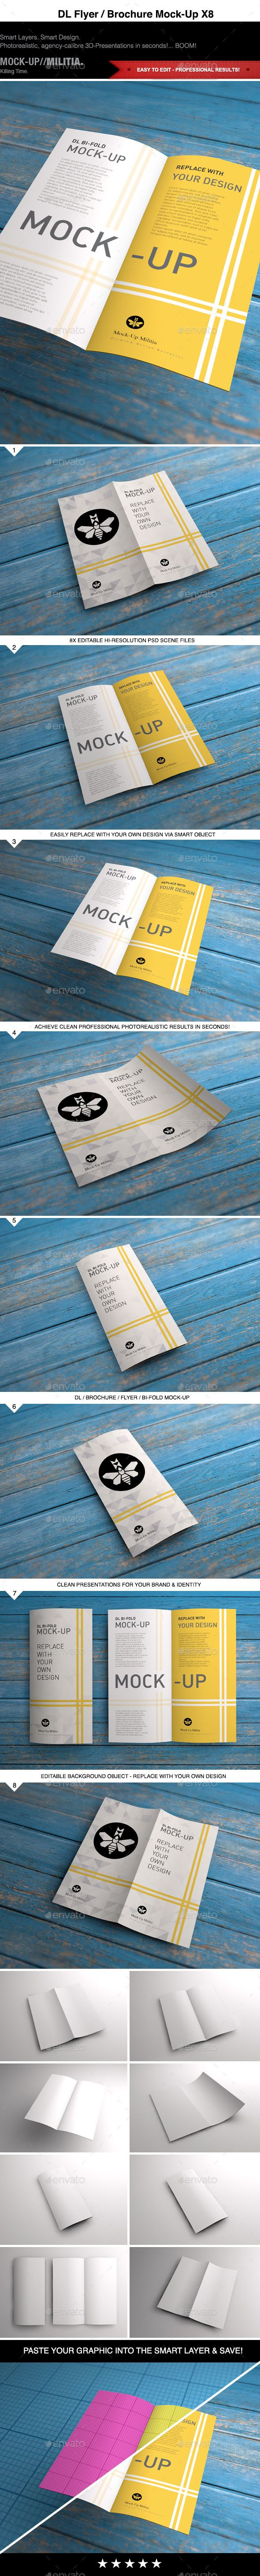 DL | Flyer | Brochure | Leaflet | BiFold MockUp — Photoshop PSD #210mmx99mm #dl • Available here → https://graphicriver.net/item/dl-flyer-brochure-leaflet-bifold-mockup/10886713?ref=pxcr